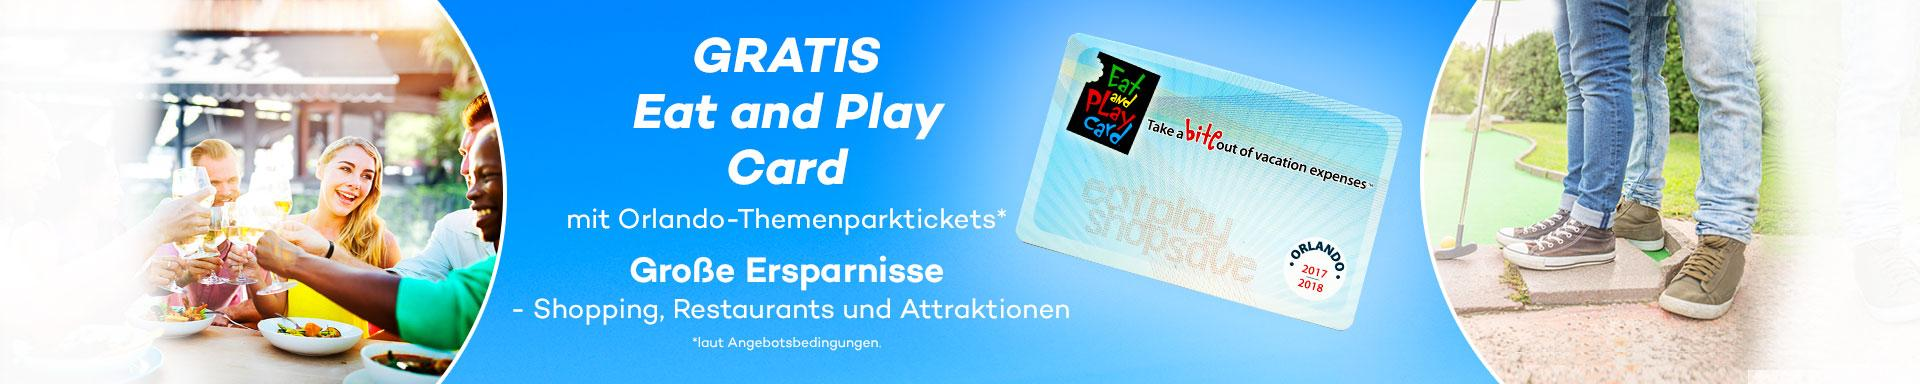 Gratis Eat and Play Card mit Orlando-Themenparktickets*